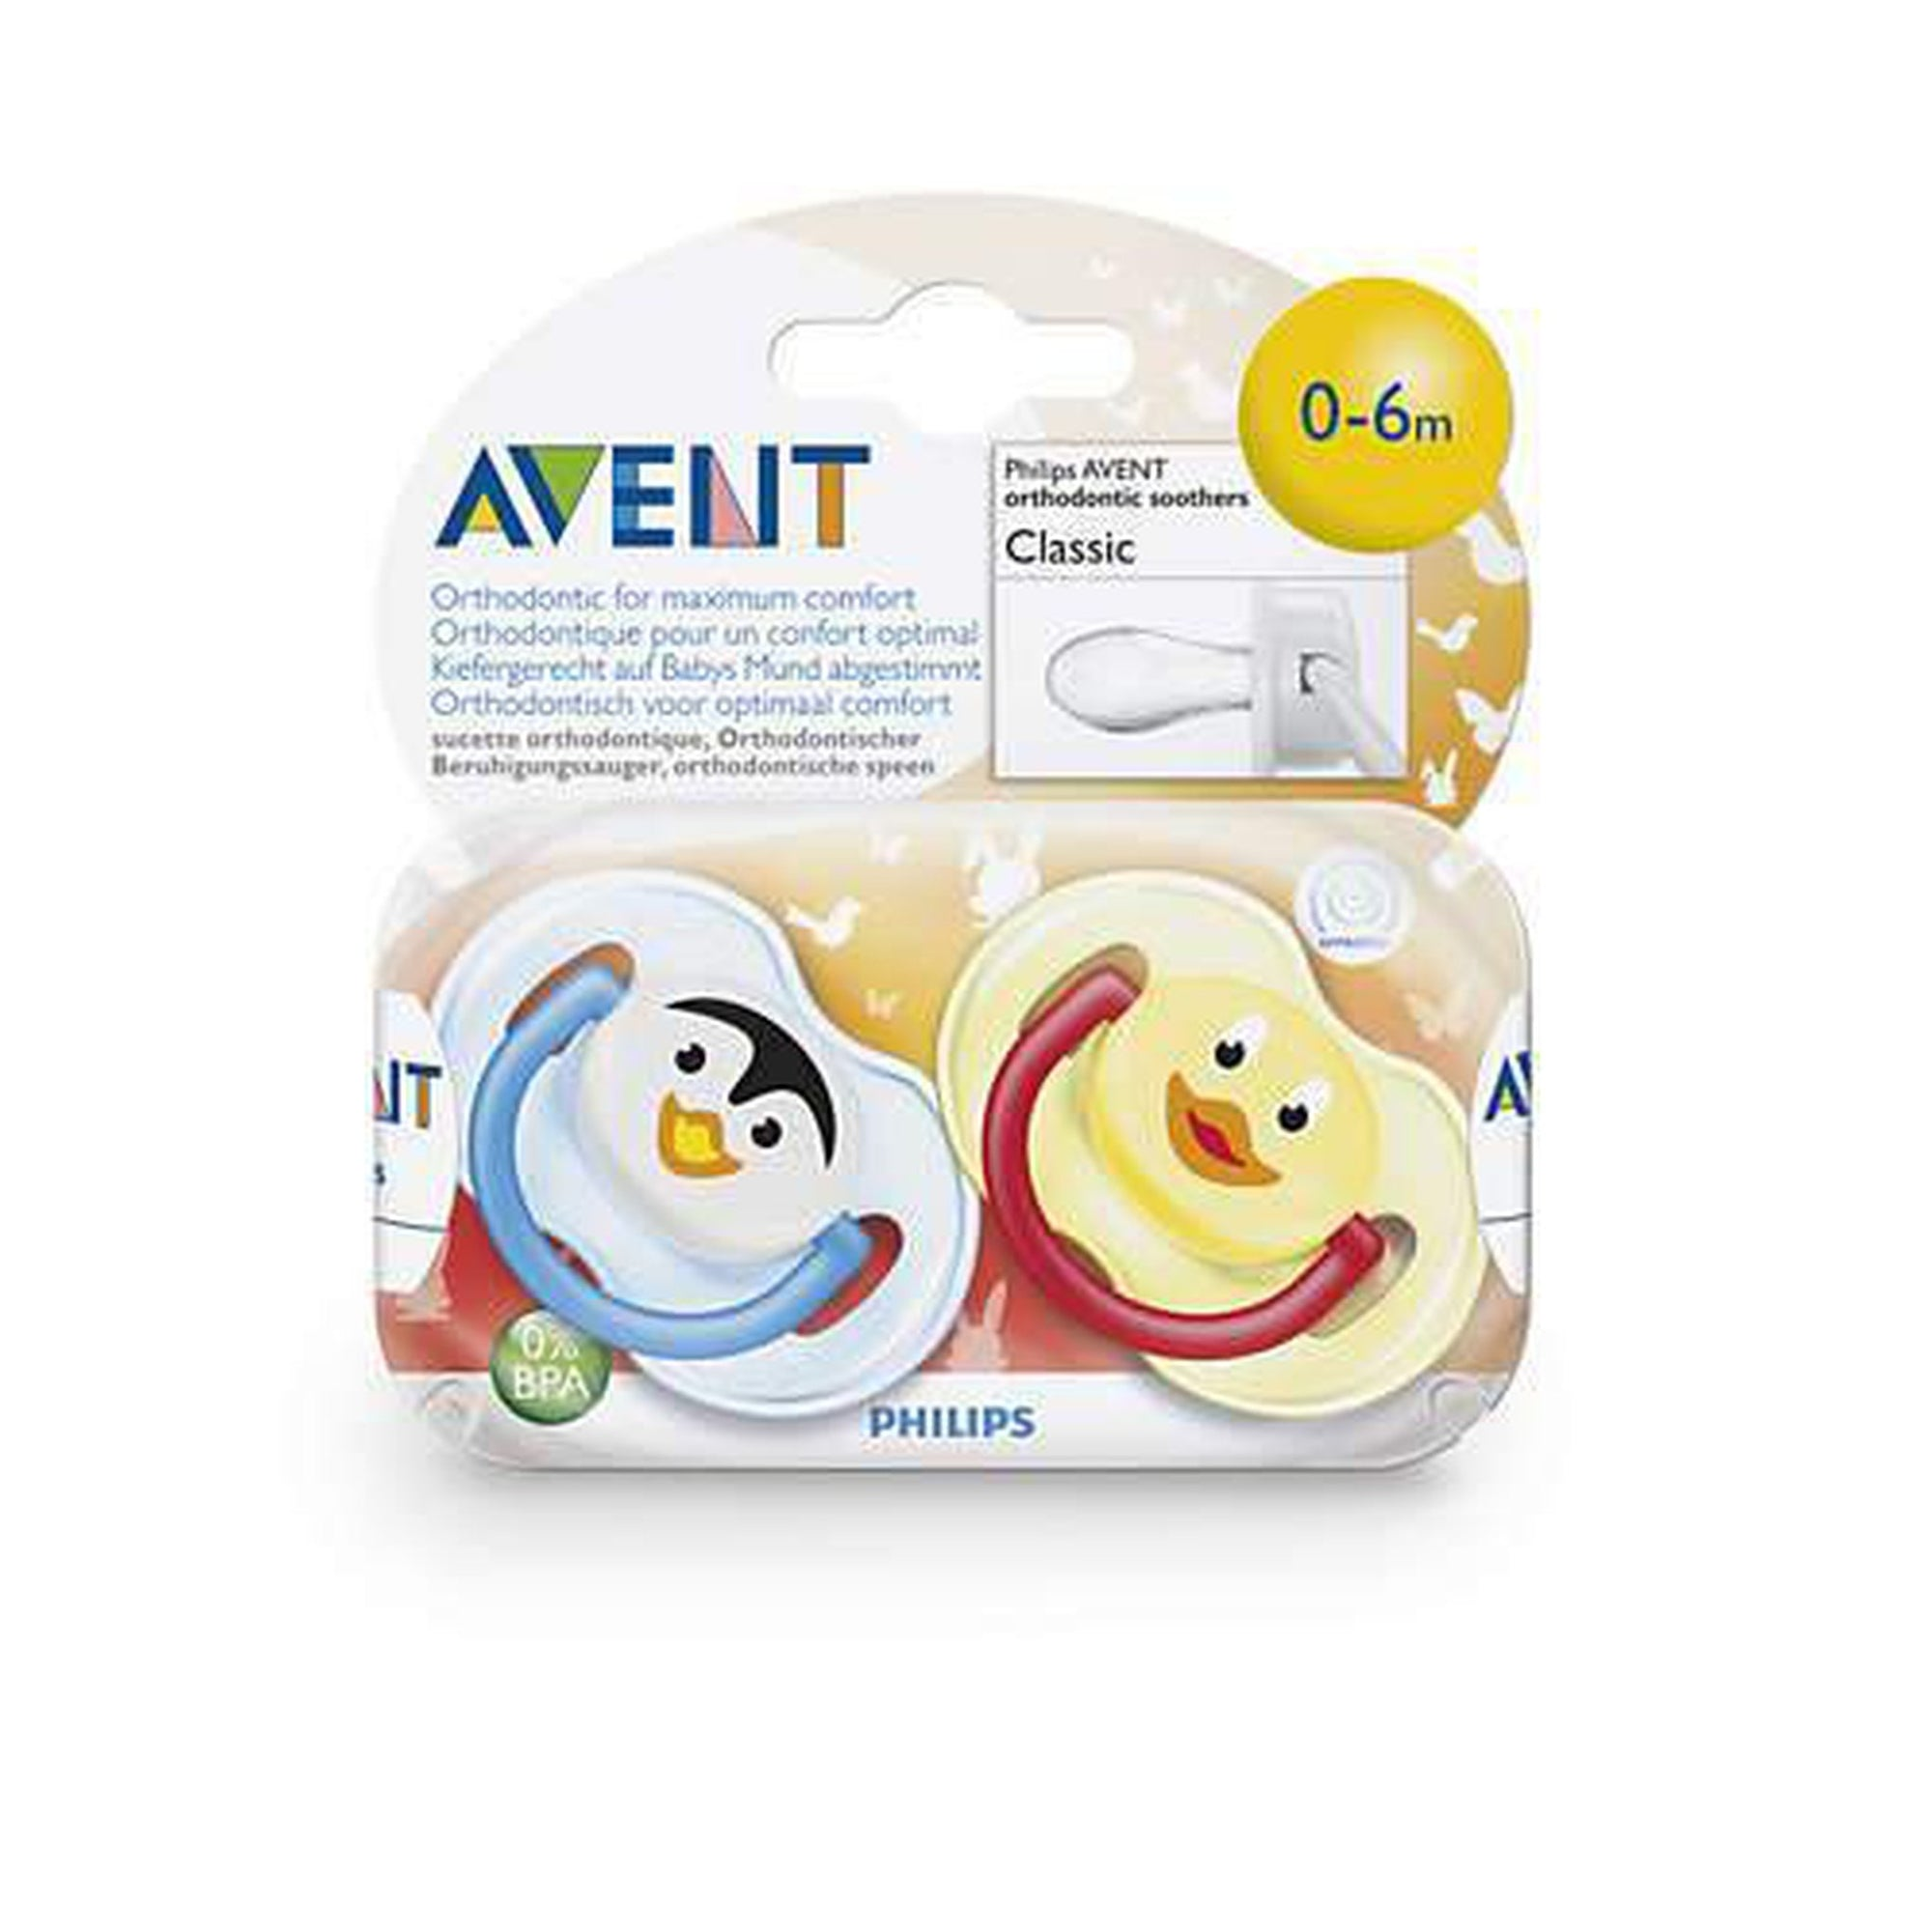 Avent Animal Orthodontic 0-6M Classic-Pacifier-Mother and Baby Shop Kenya's #1 Online Baby Shop